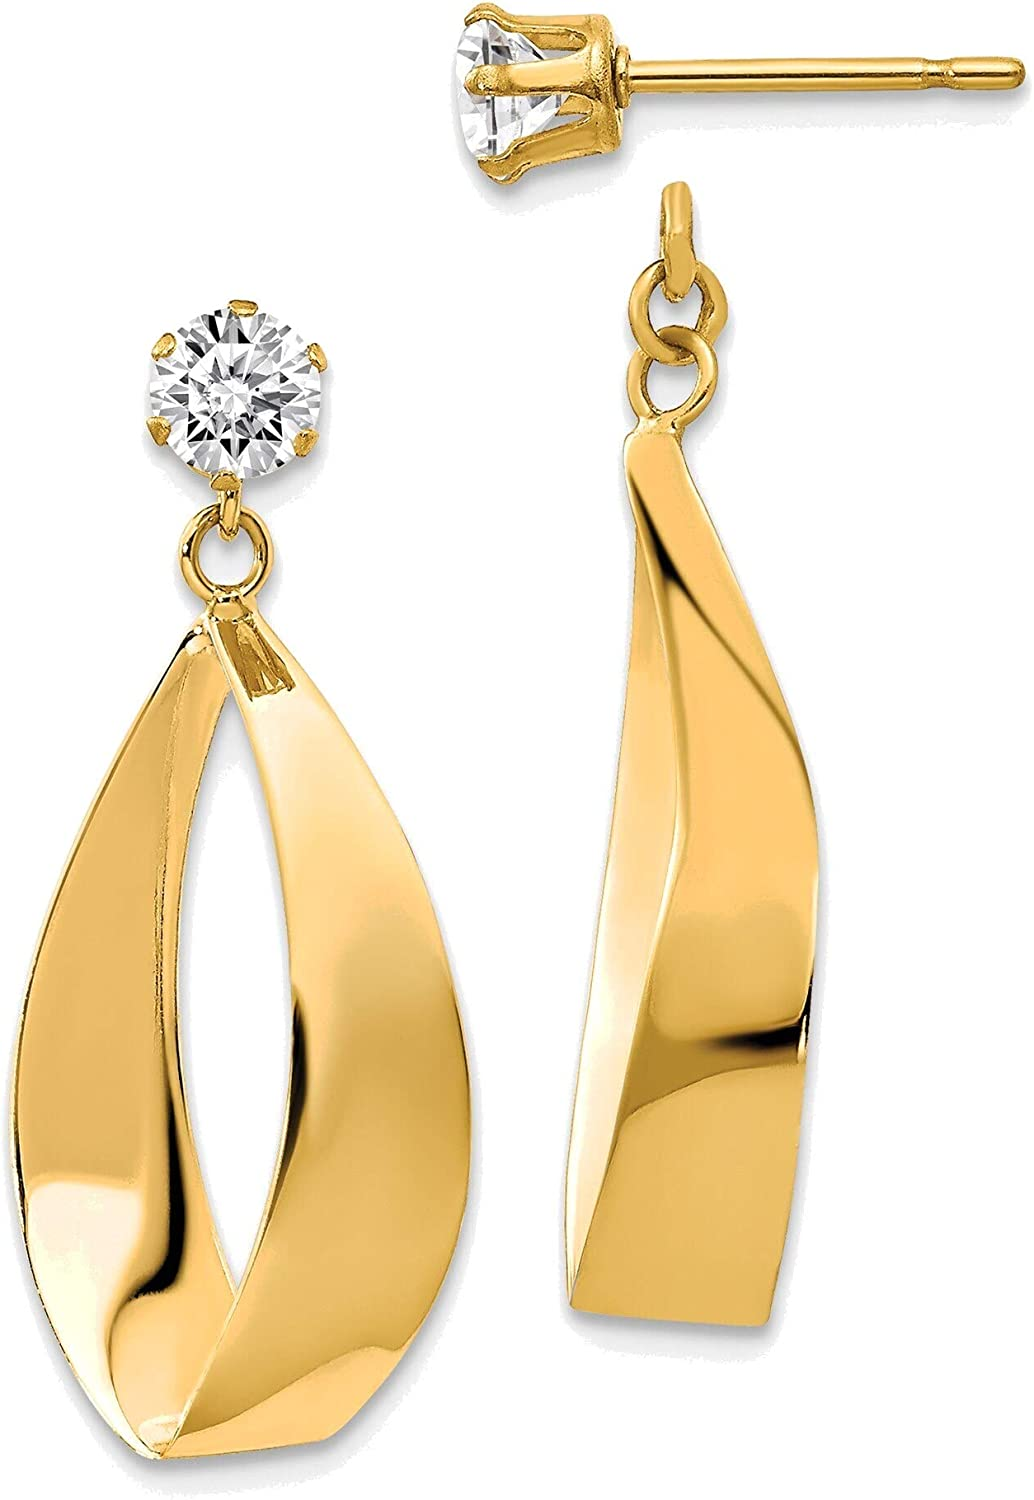 Polished Oval Dangle with CZ Stud Earring Jackets in 14K Yellow Gold